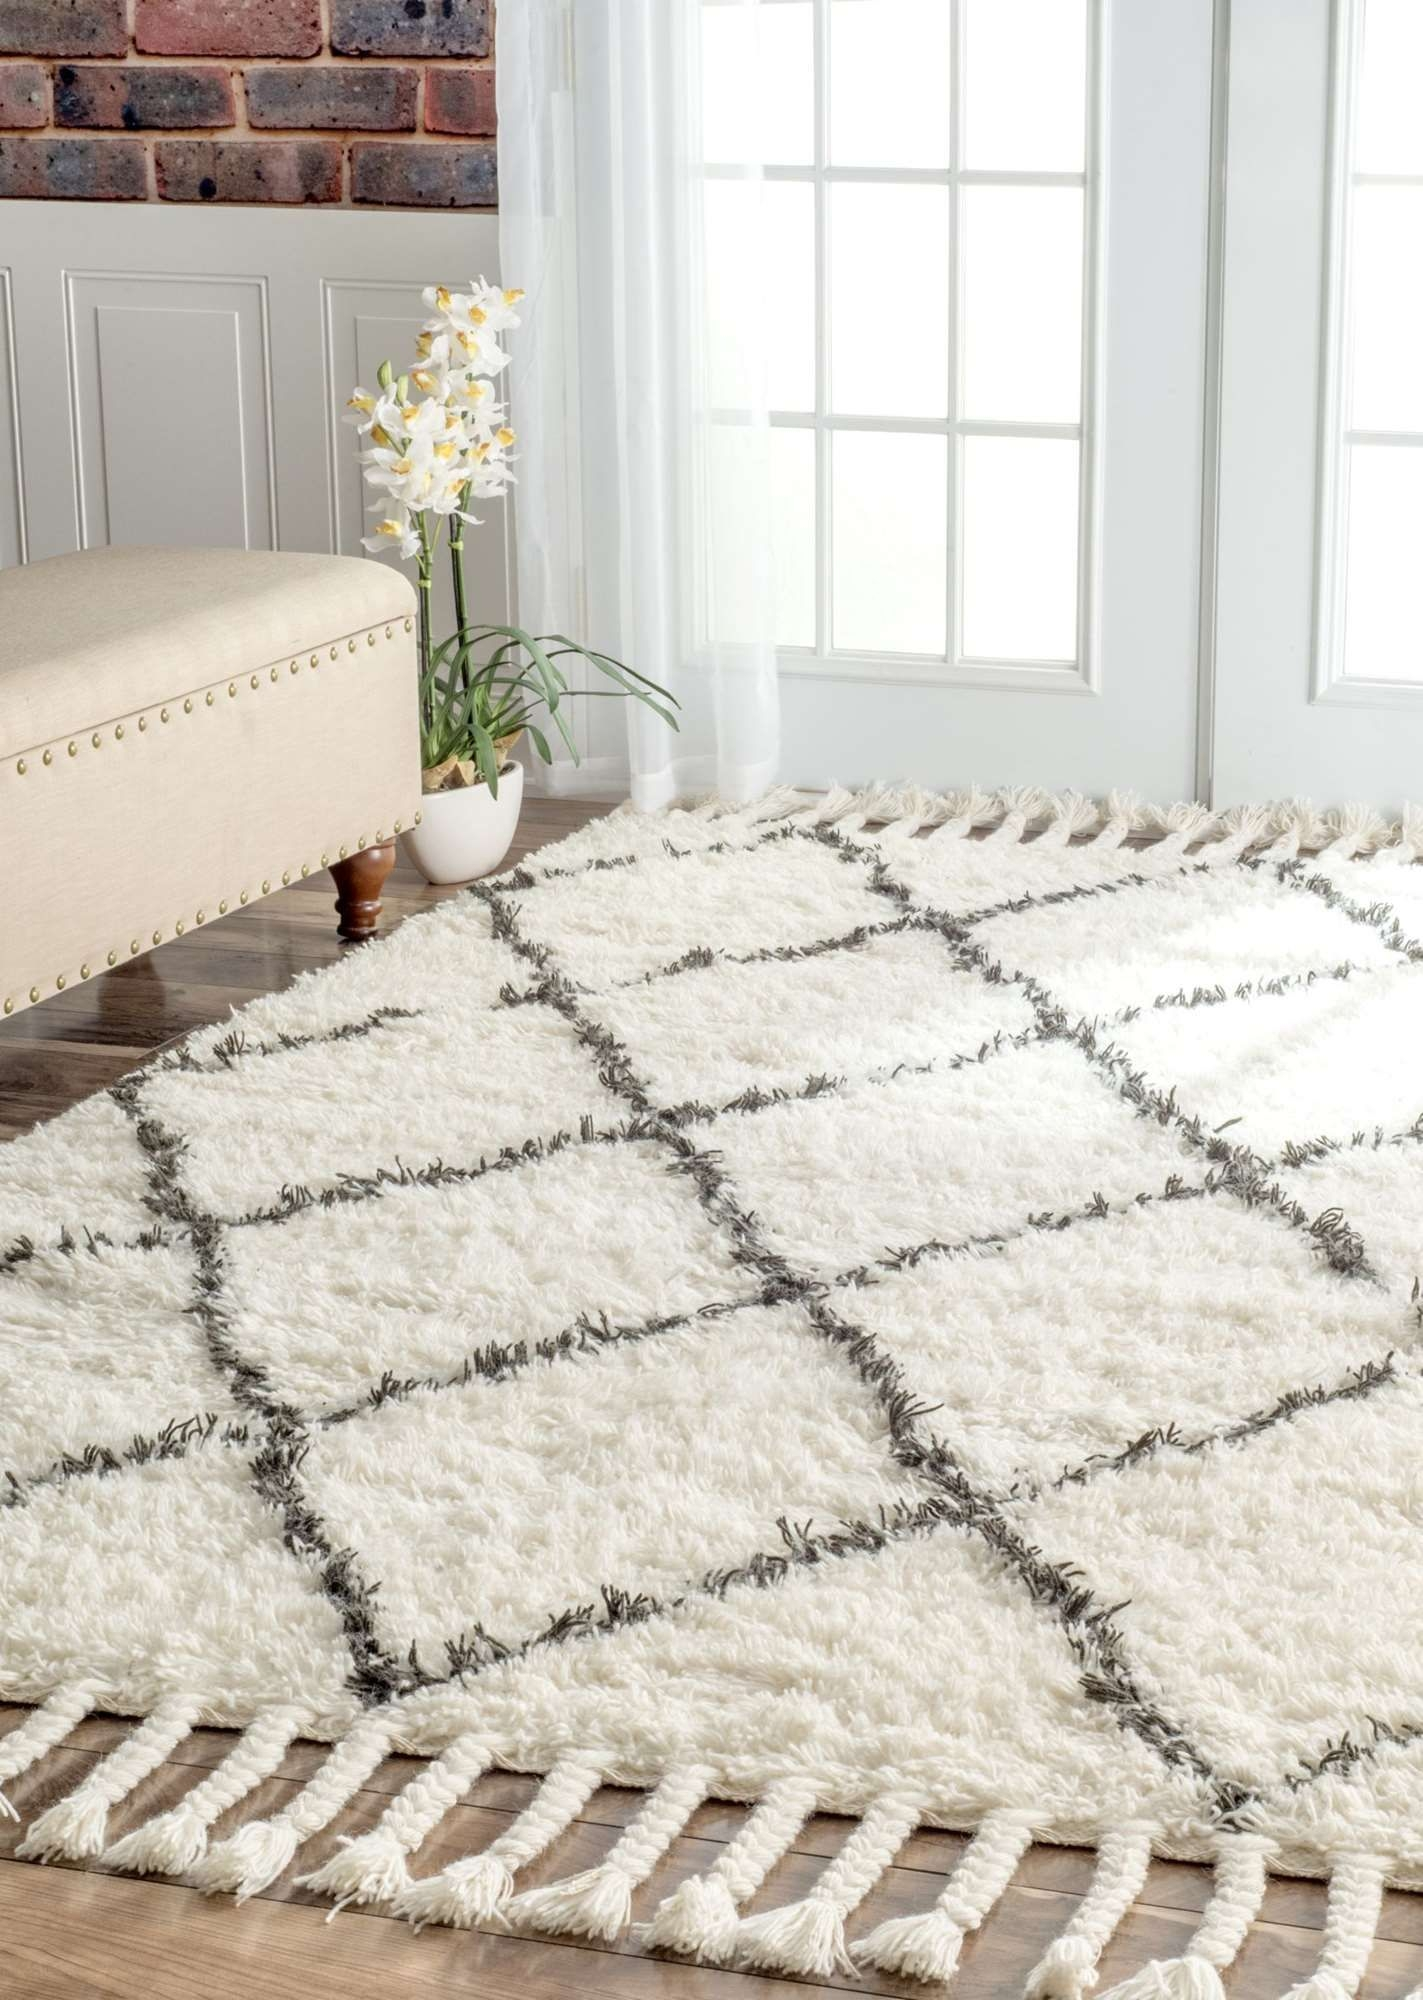 Stupendous Living Room Rugs 10x14 On Charming Marrakesh Shag Natural Rug On Living Room Rugs 10x14